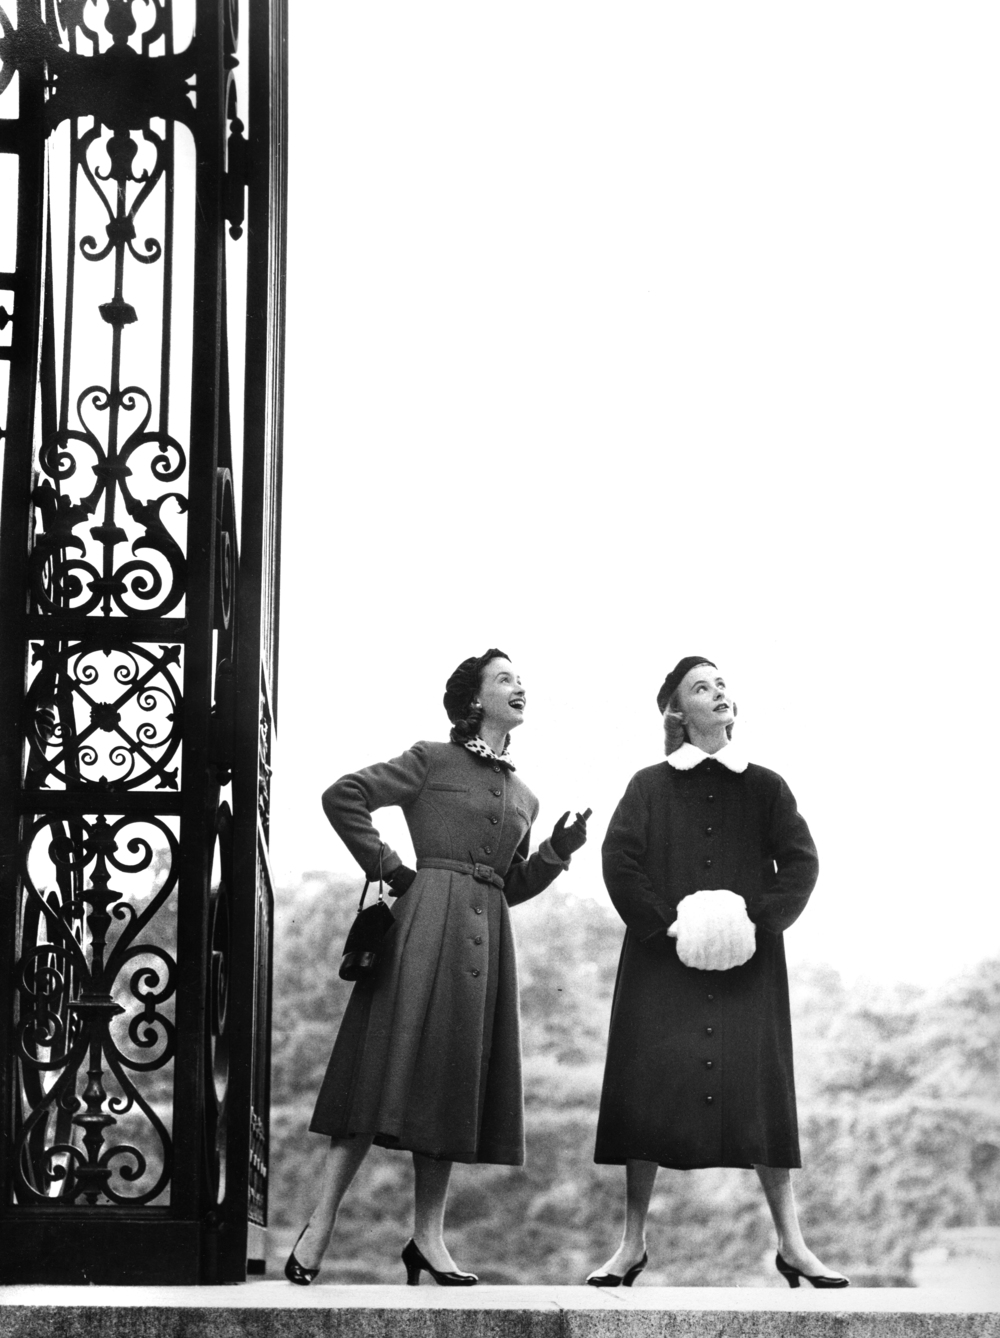 13_1_Two Woman Standing Next to a Gate_Dan Wynn Archive3.jpeg